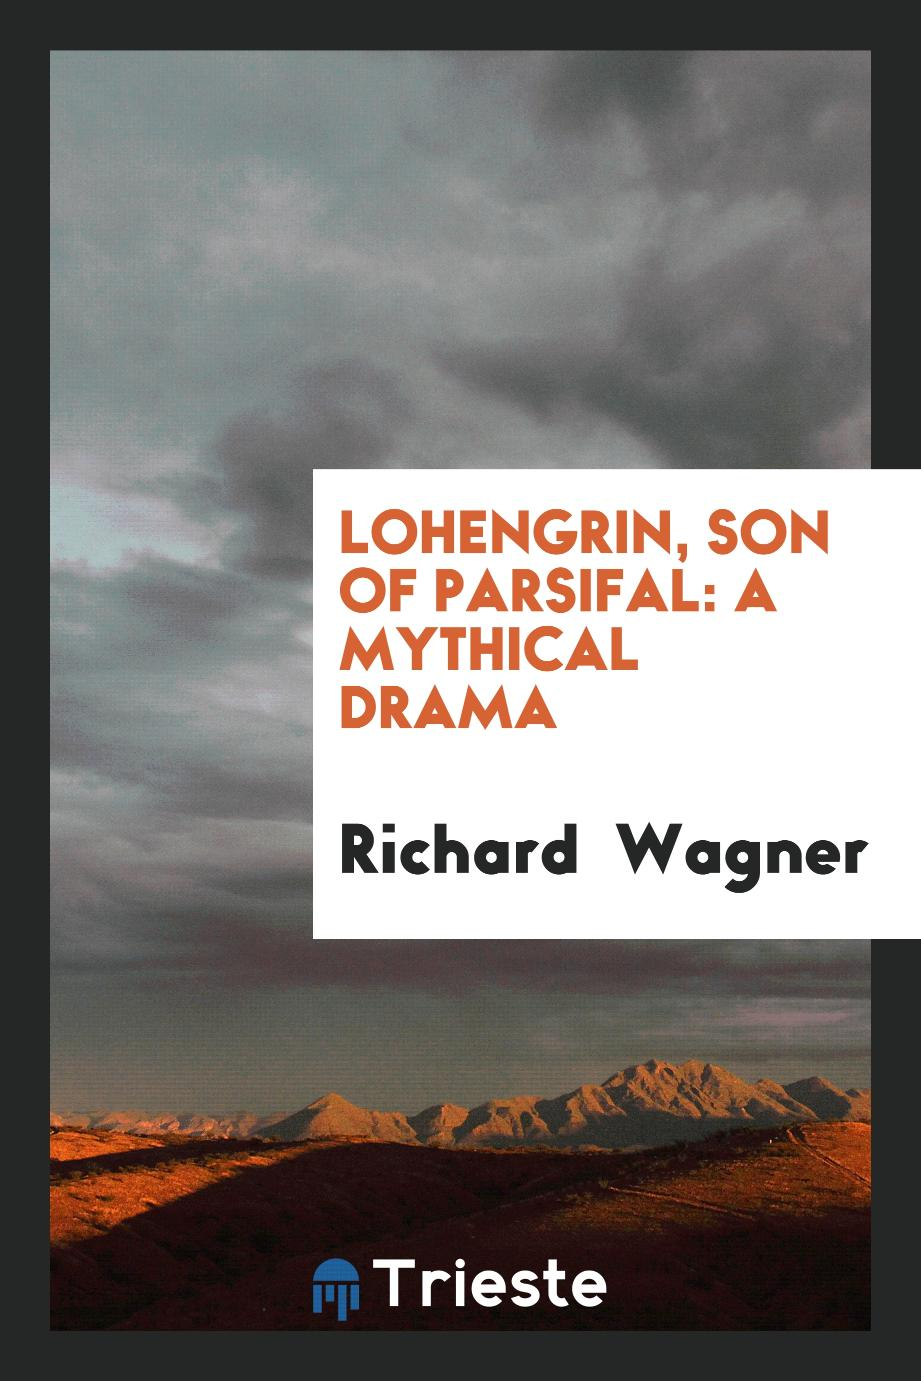 Lohengrin, Son of Parsifal: A Mythical Drama